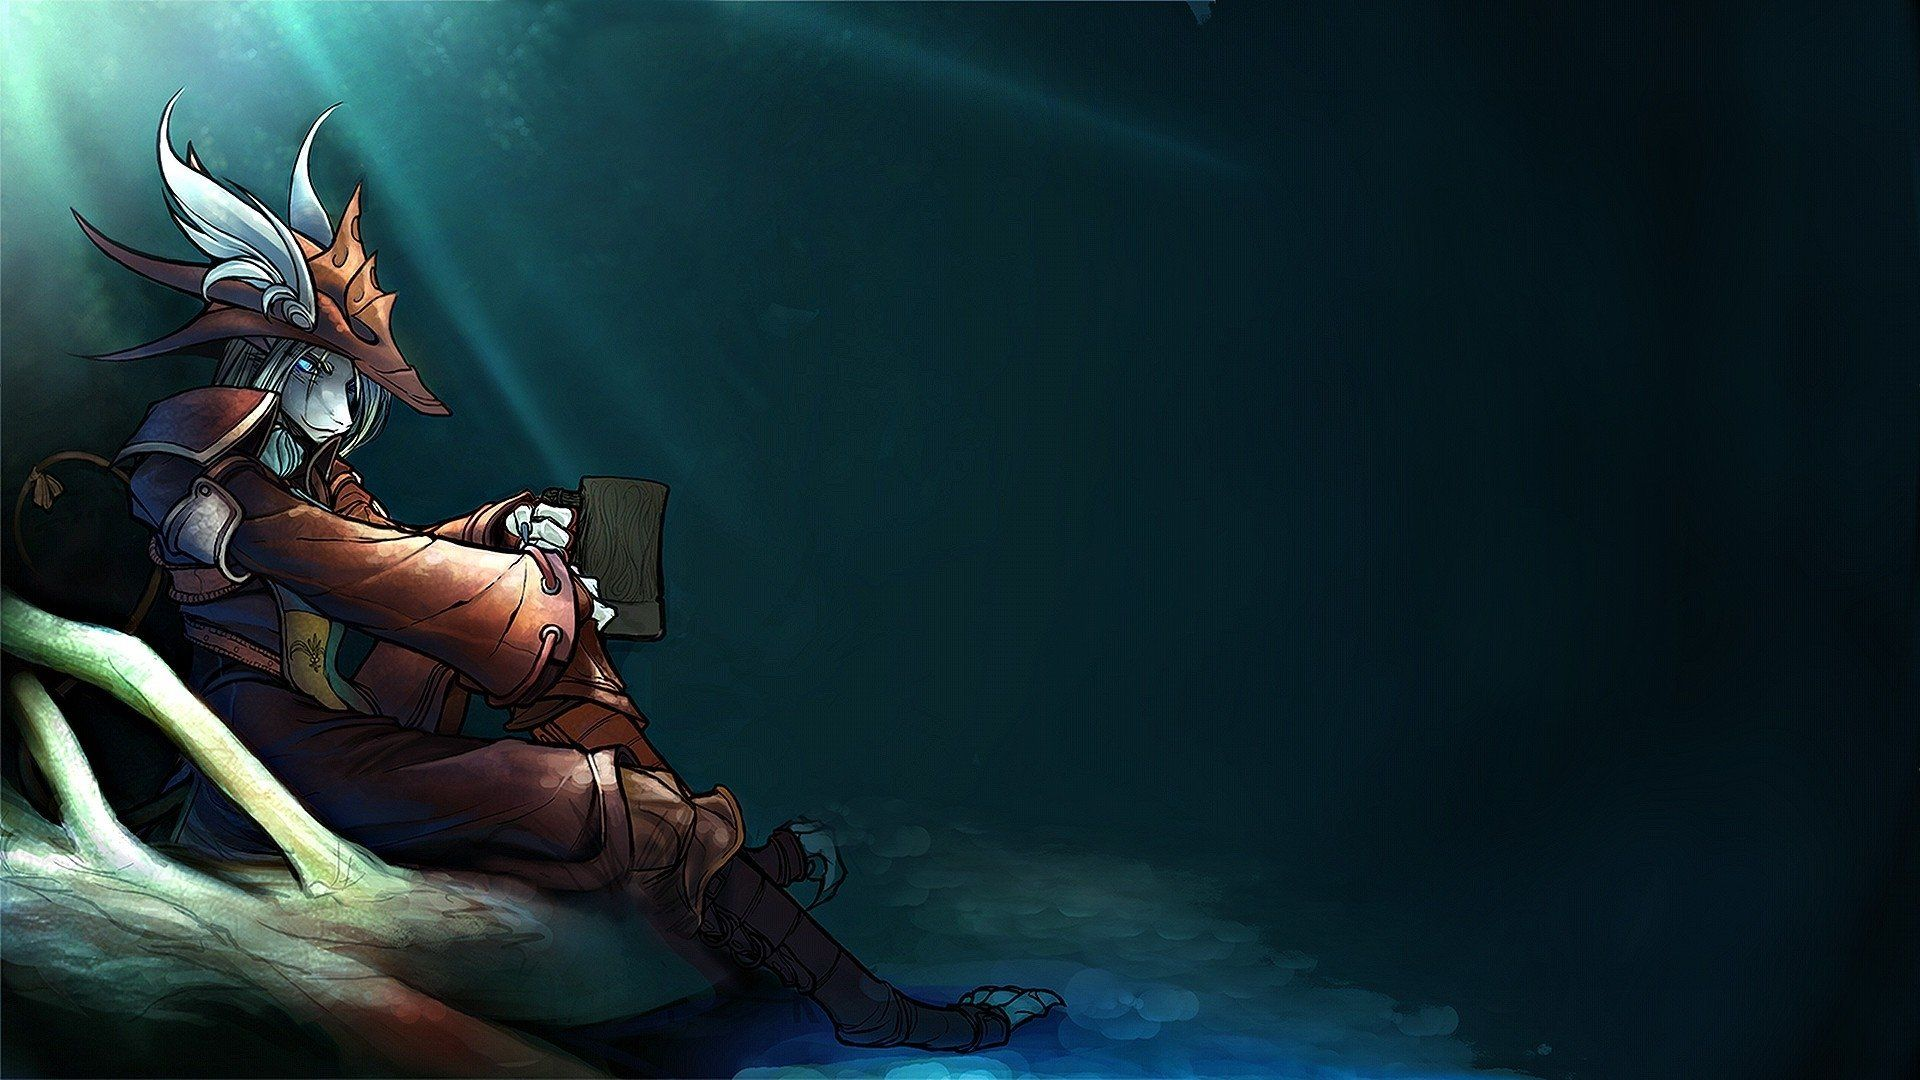 Video Game Final Fantasy Ix Wallpaper Final Fantasy Ix Final Fantasy Final Fantasy Artwork